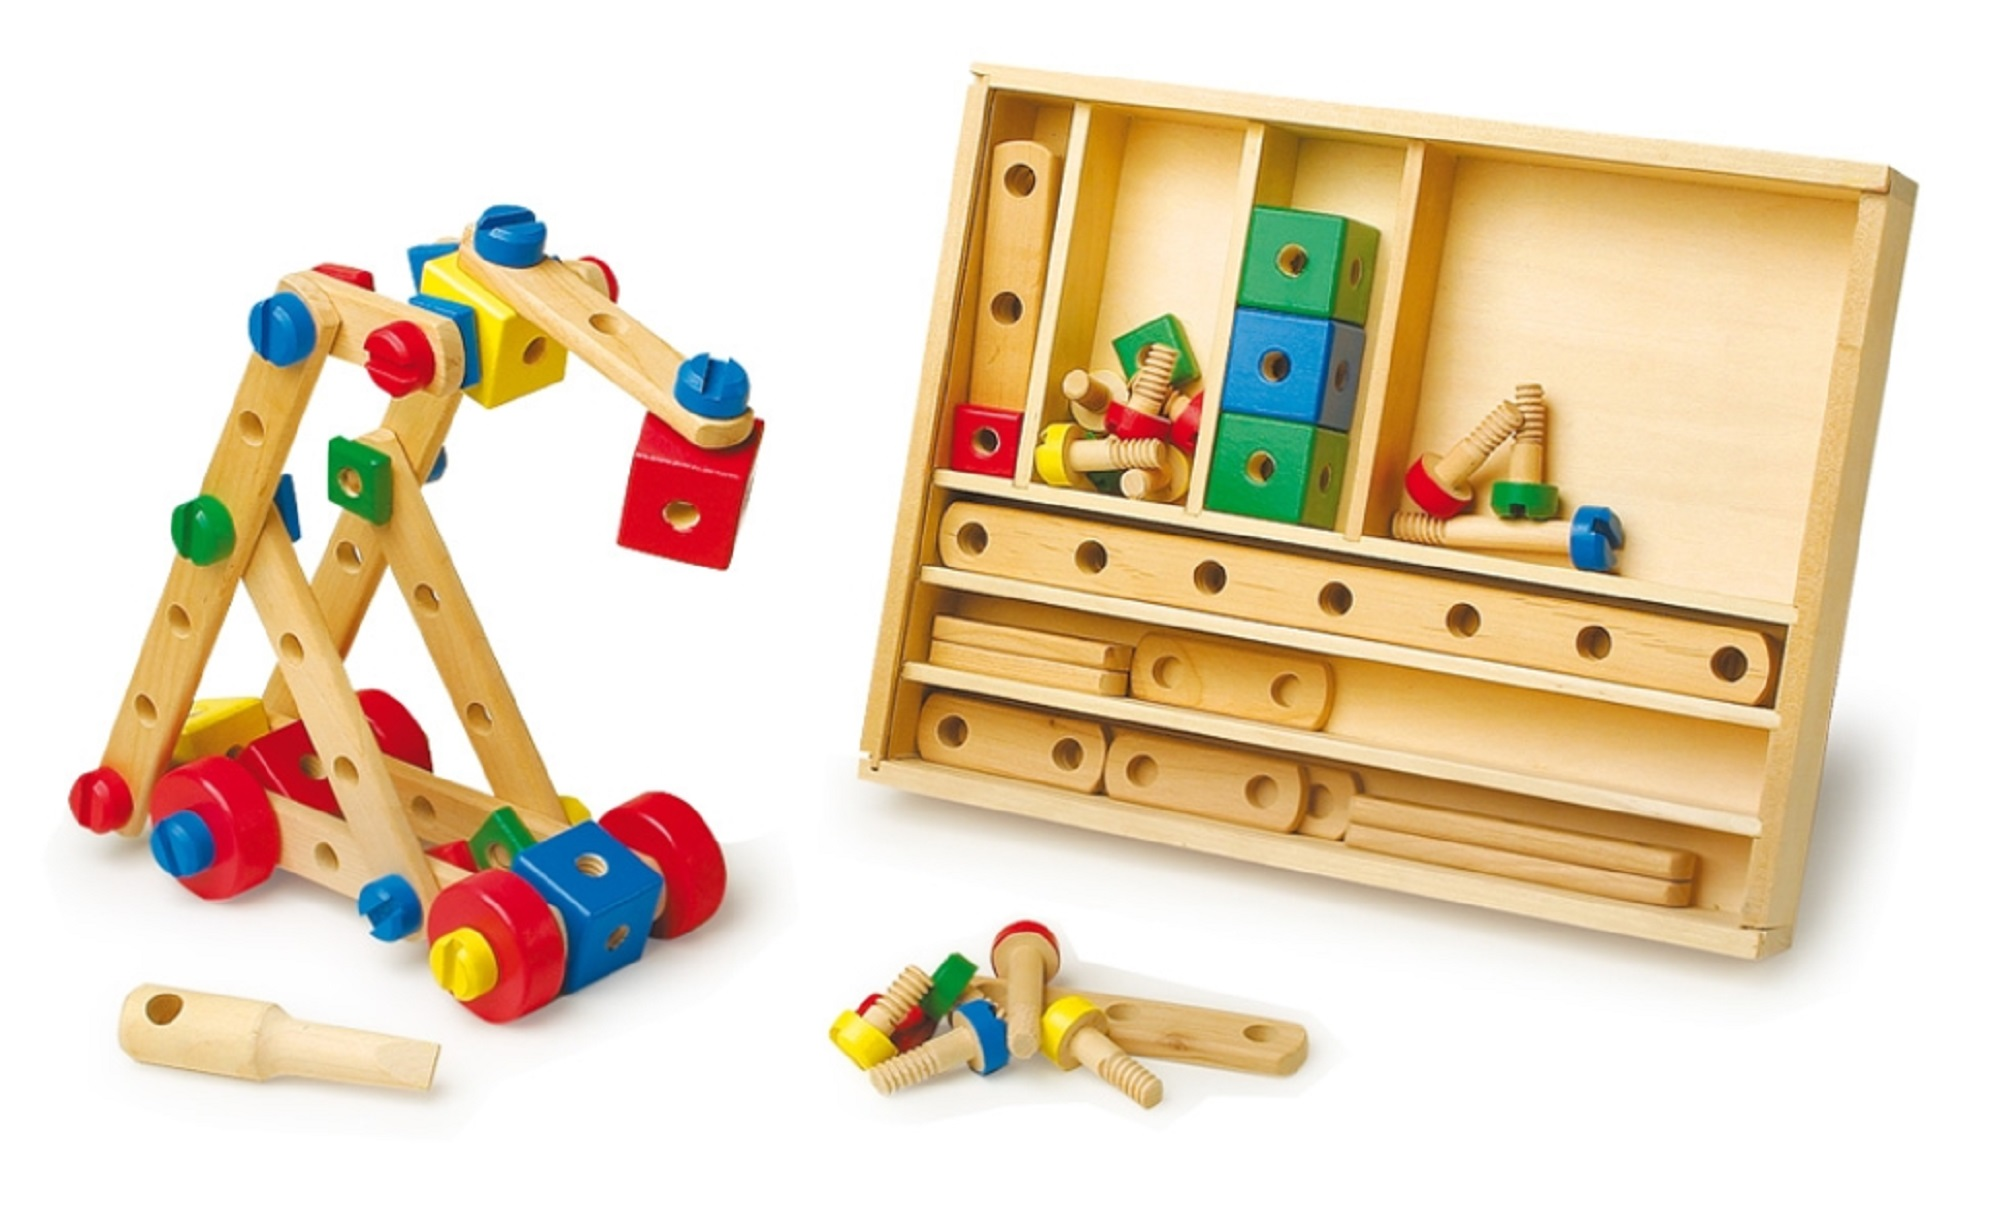 Wooden Construction Set, childrens wooden construction set